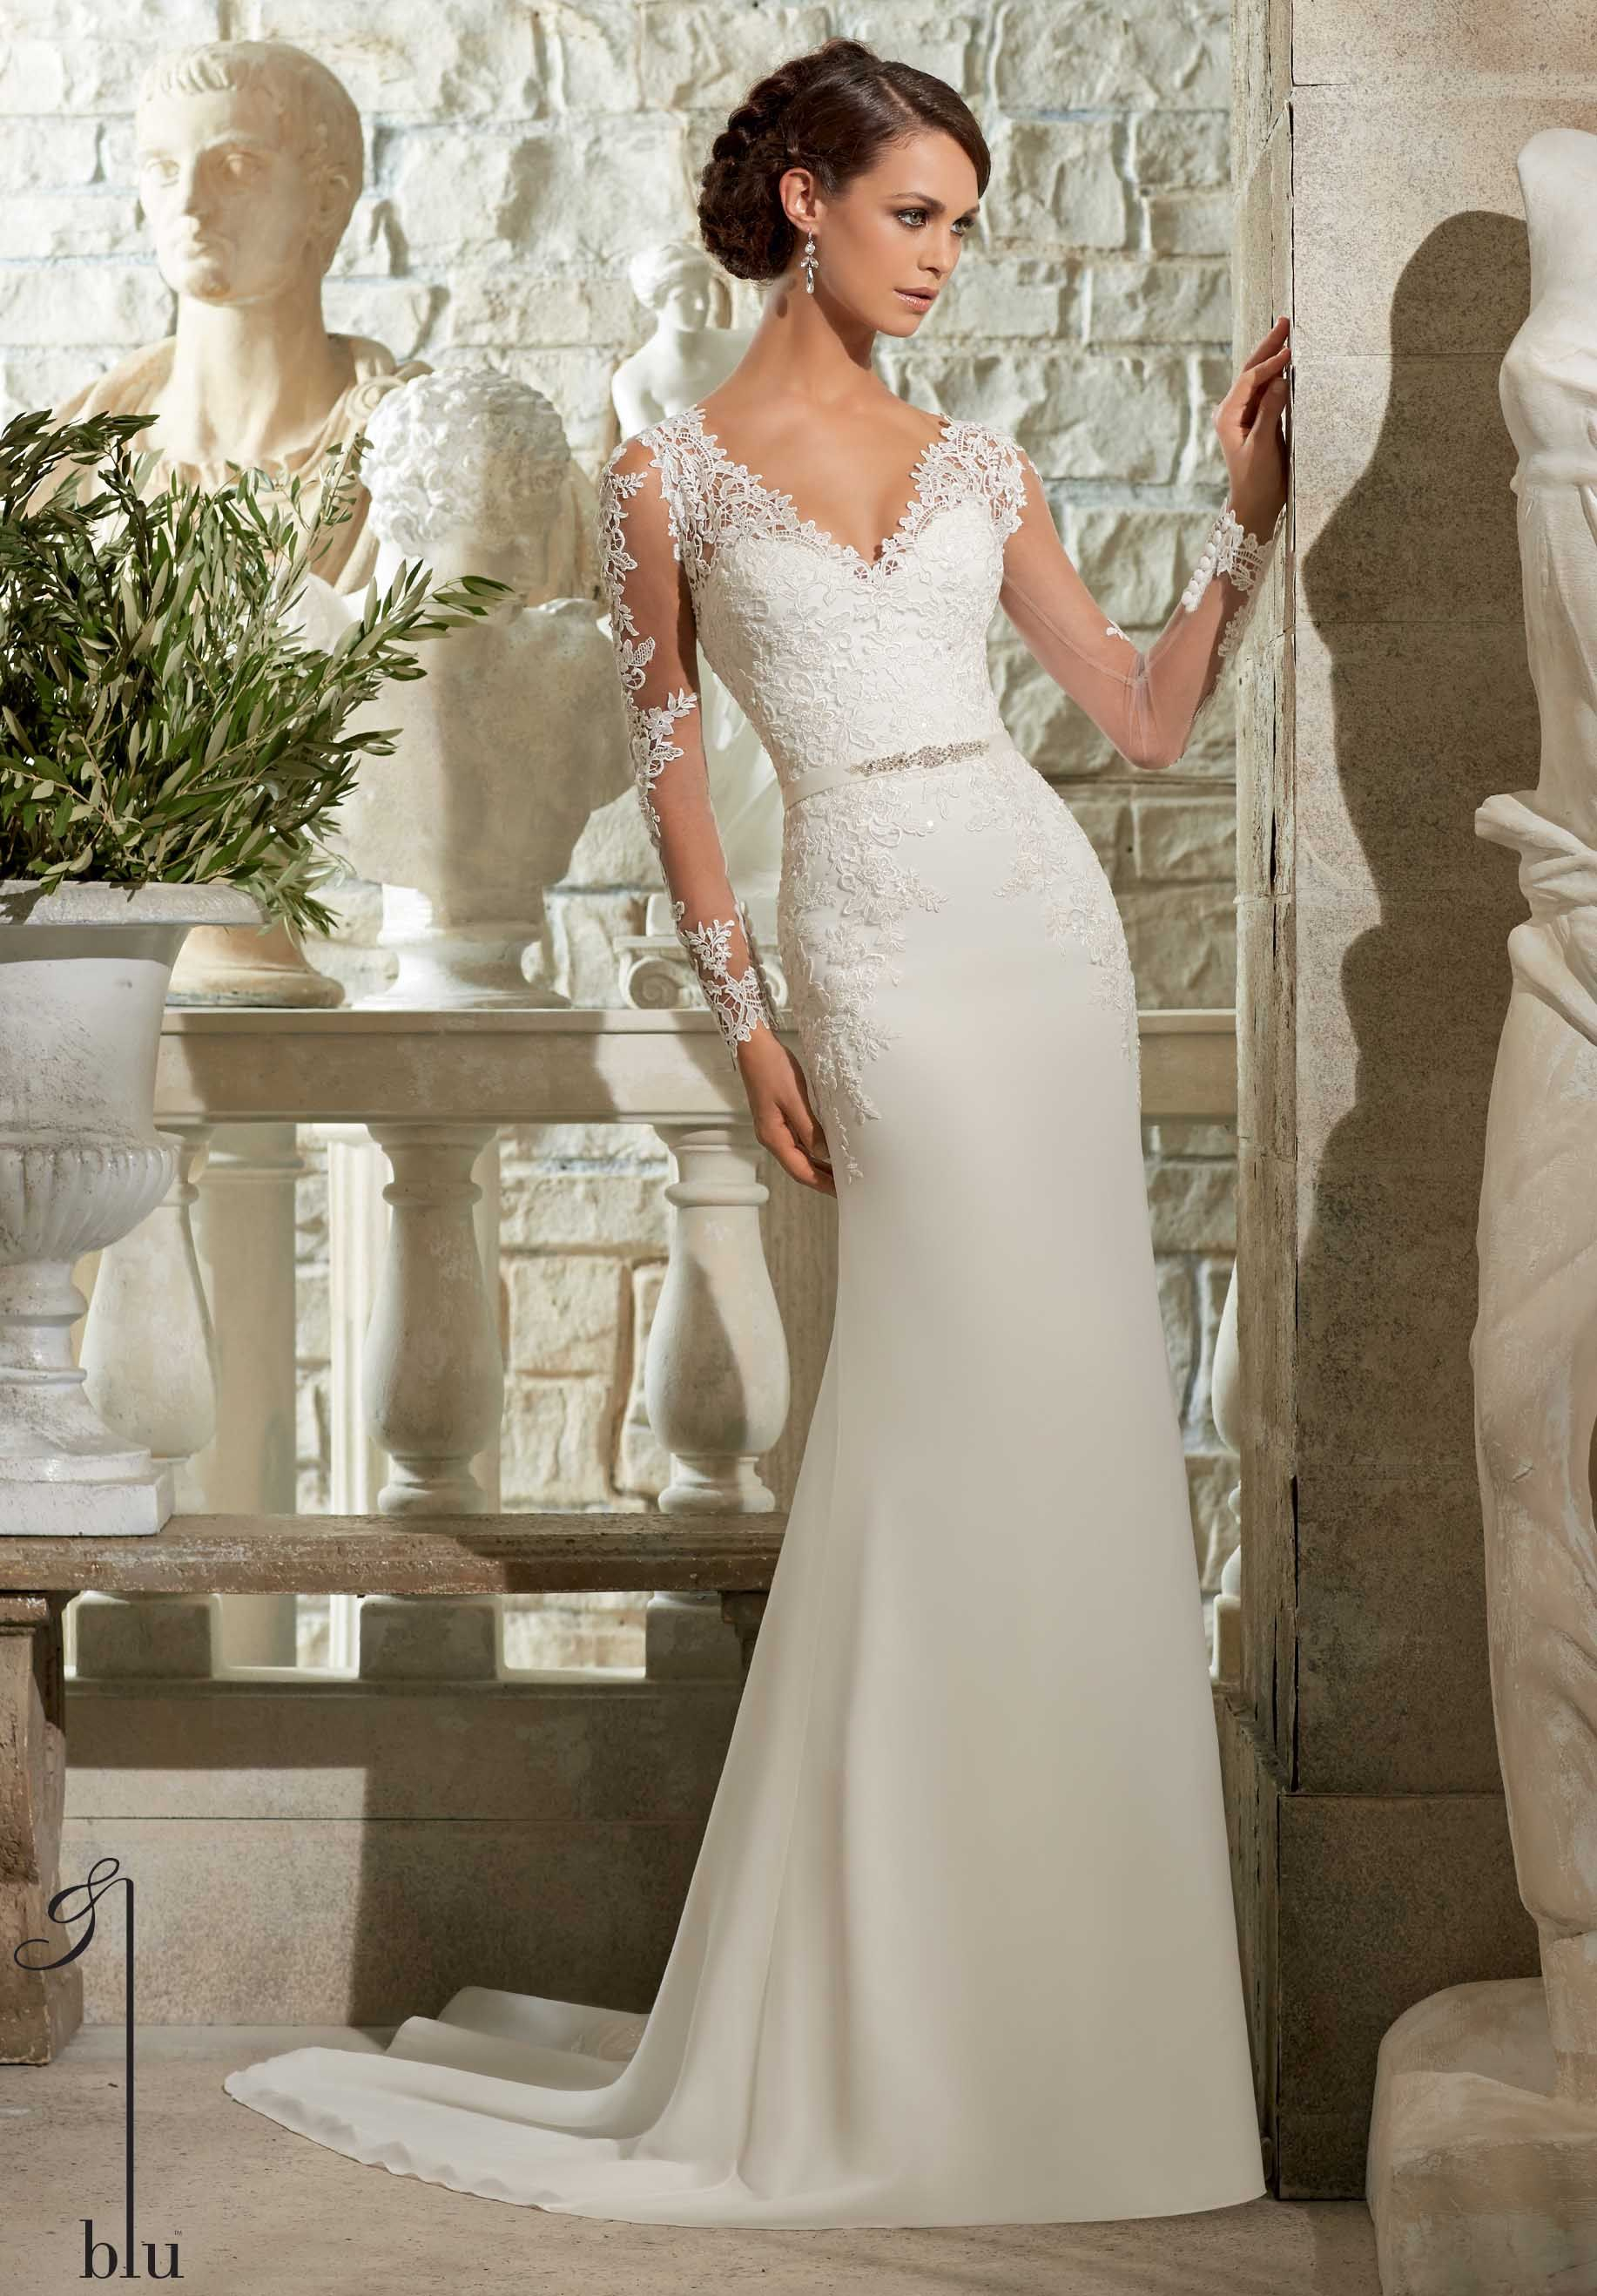 Mori Lee Wedding Dresses - Style 5306 | Bridal Gowns | Pinterest ...